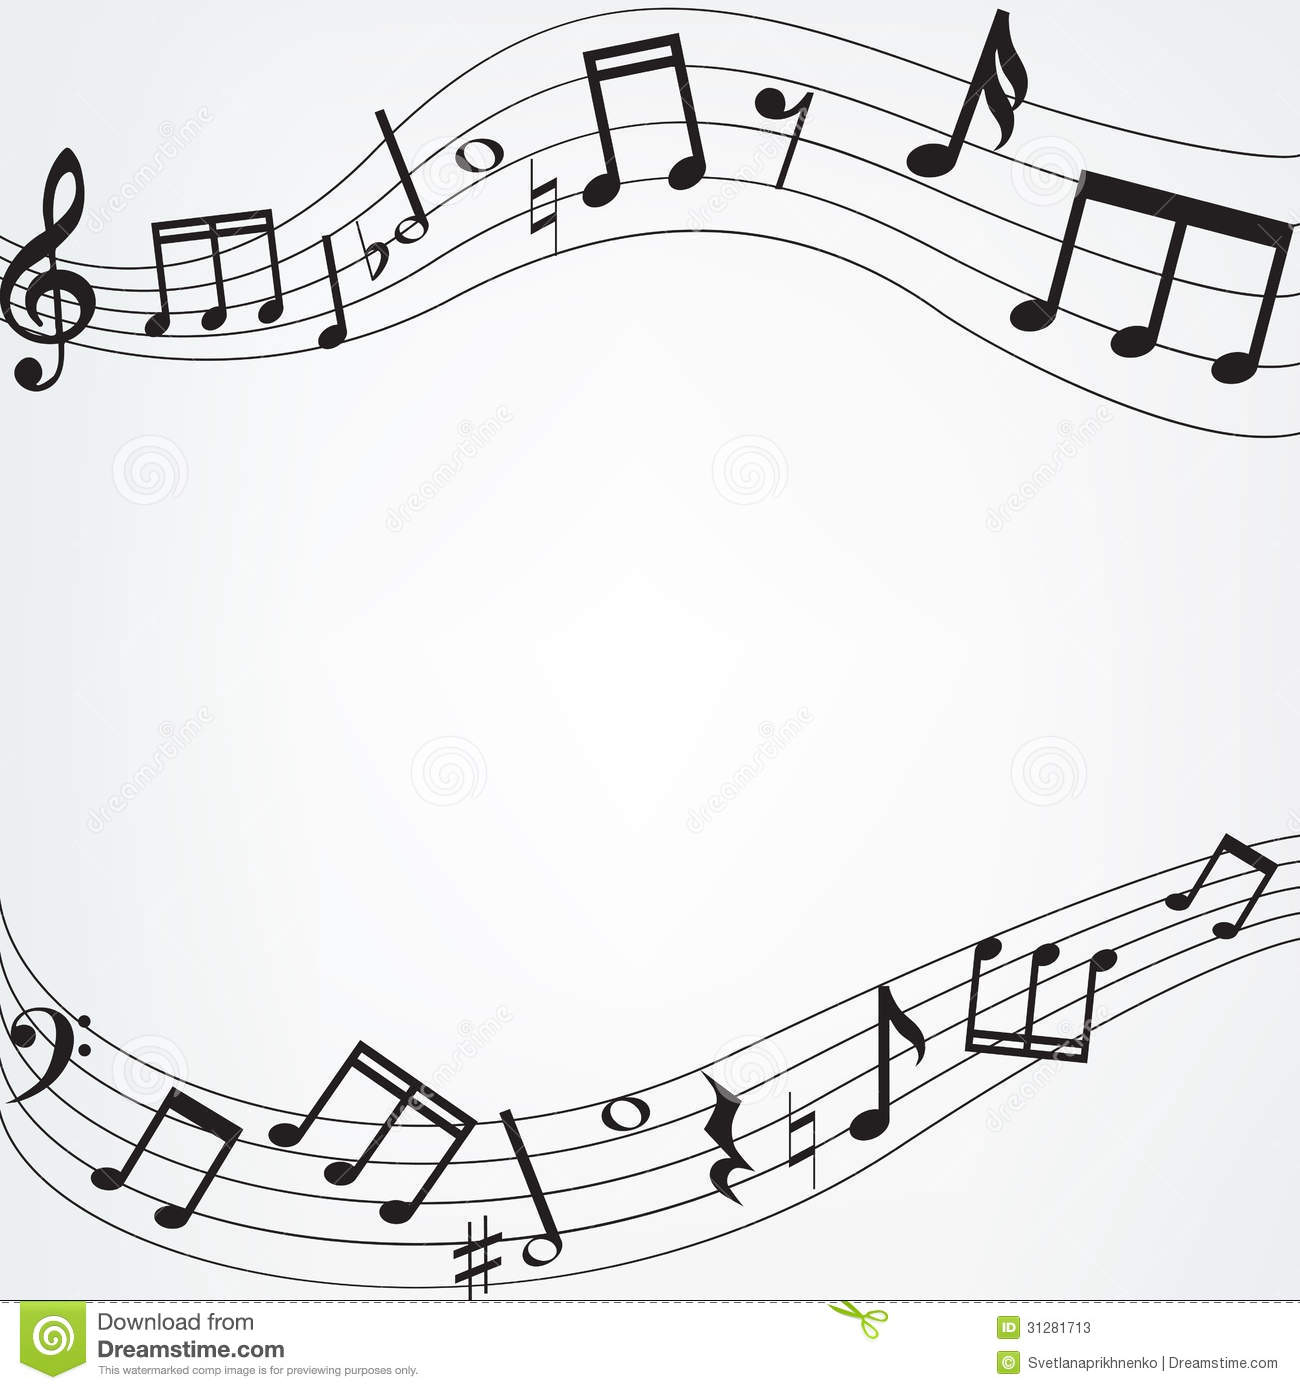 Free Download Music Note Wallpaper Border 1300x1390 For Your